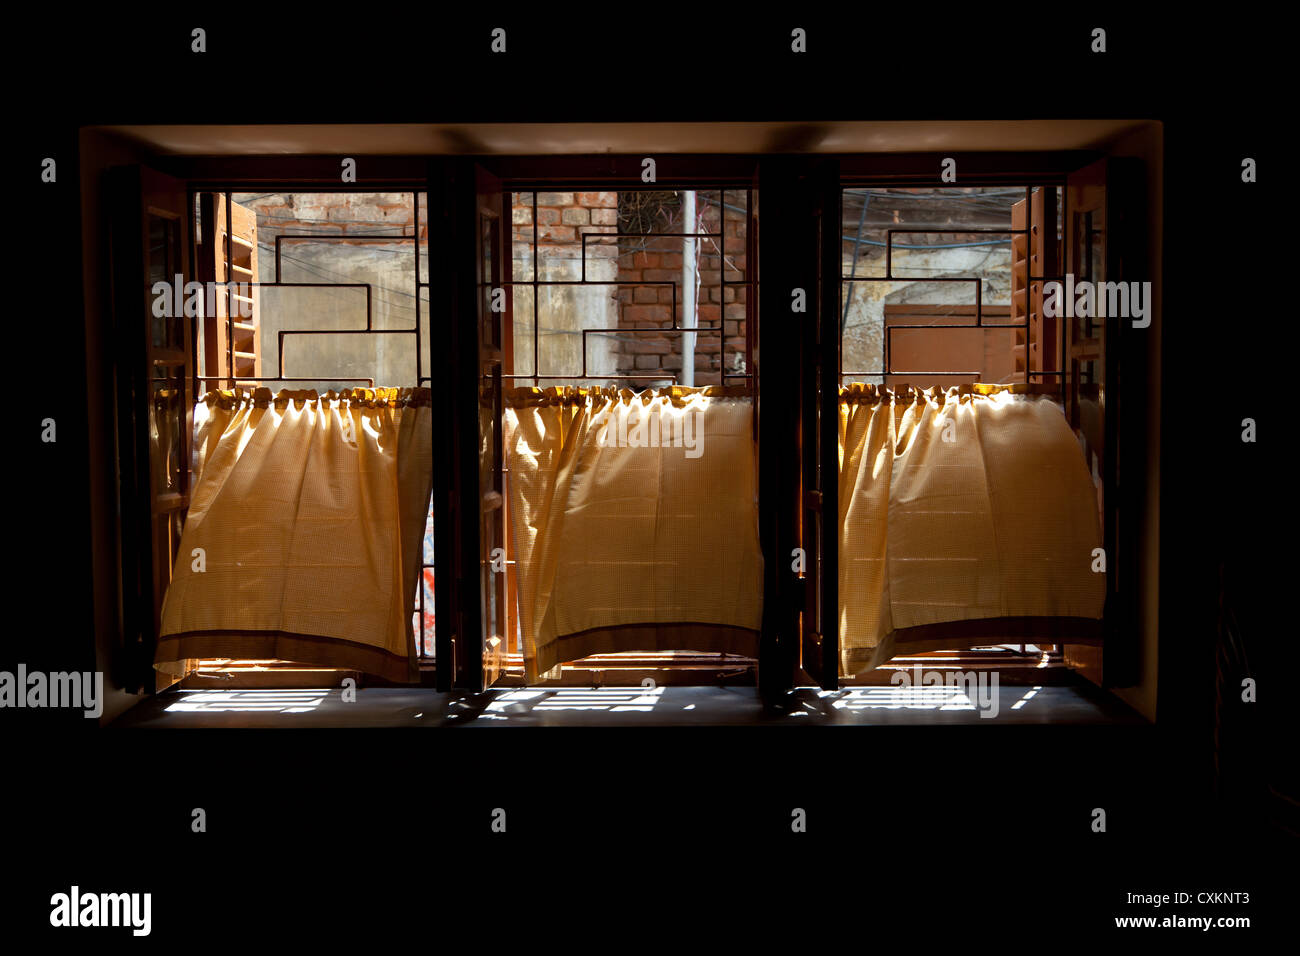 Stock photo windows of the mother house of mother teresa in kolkata in india